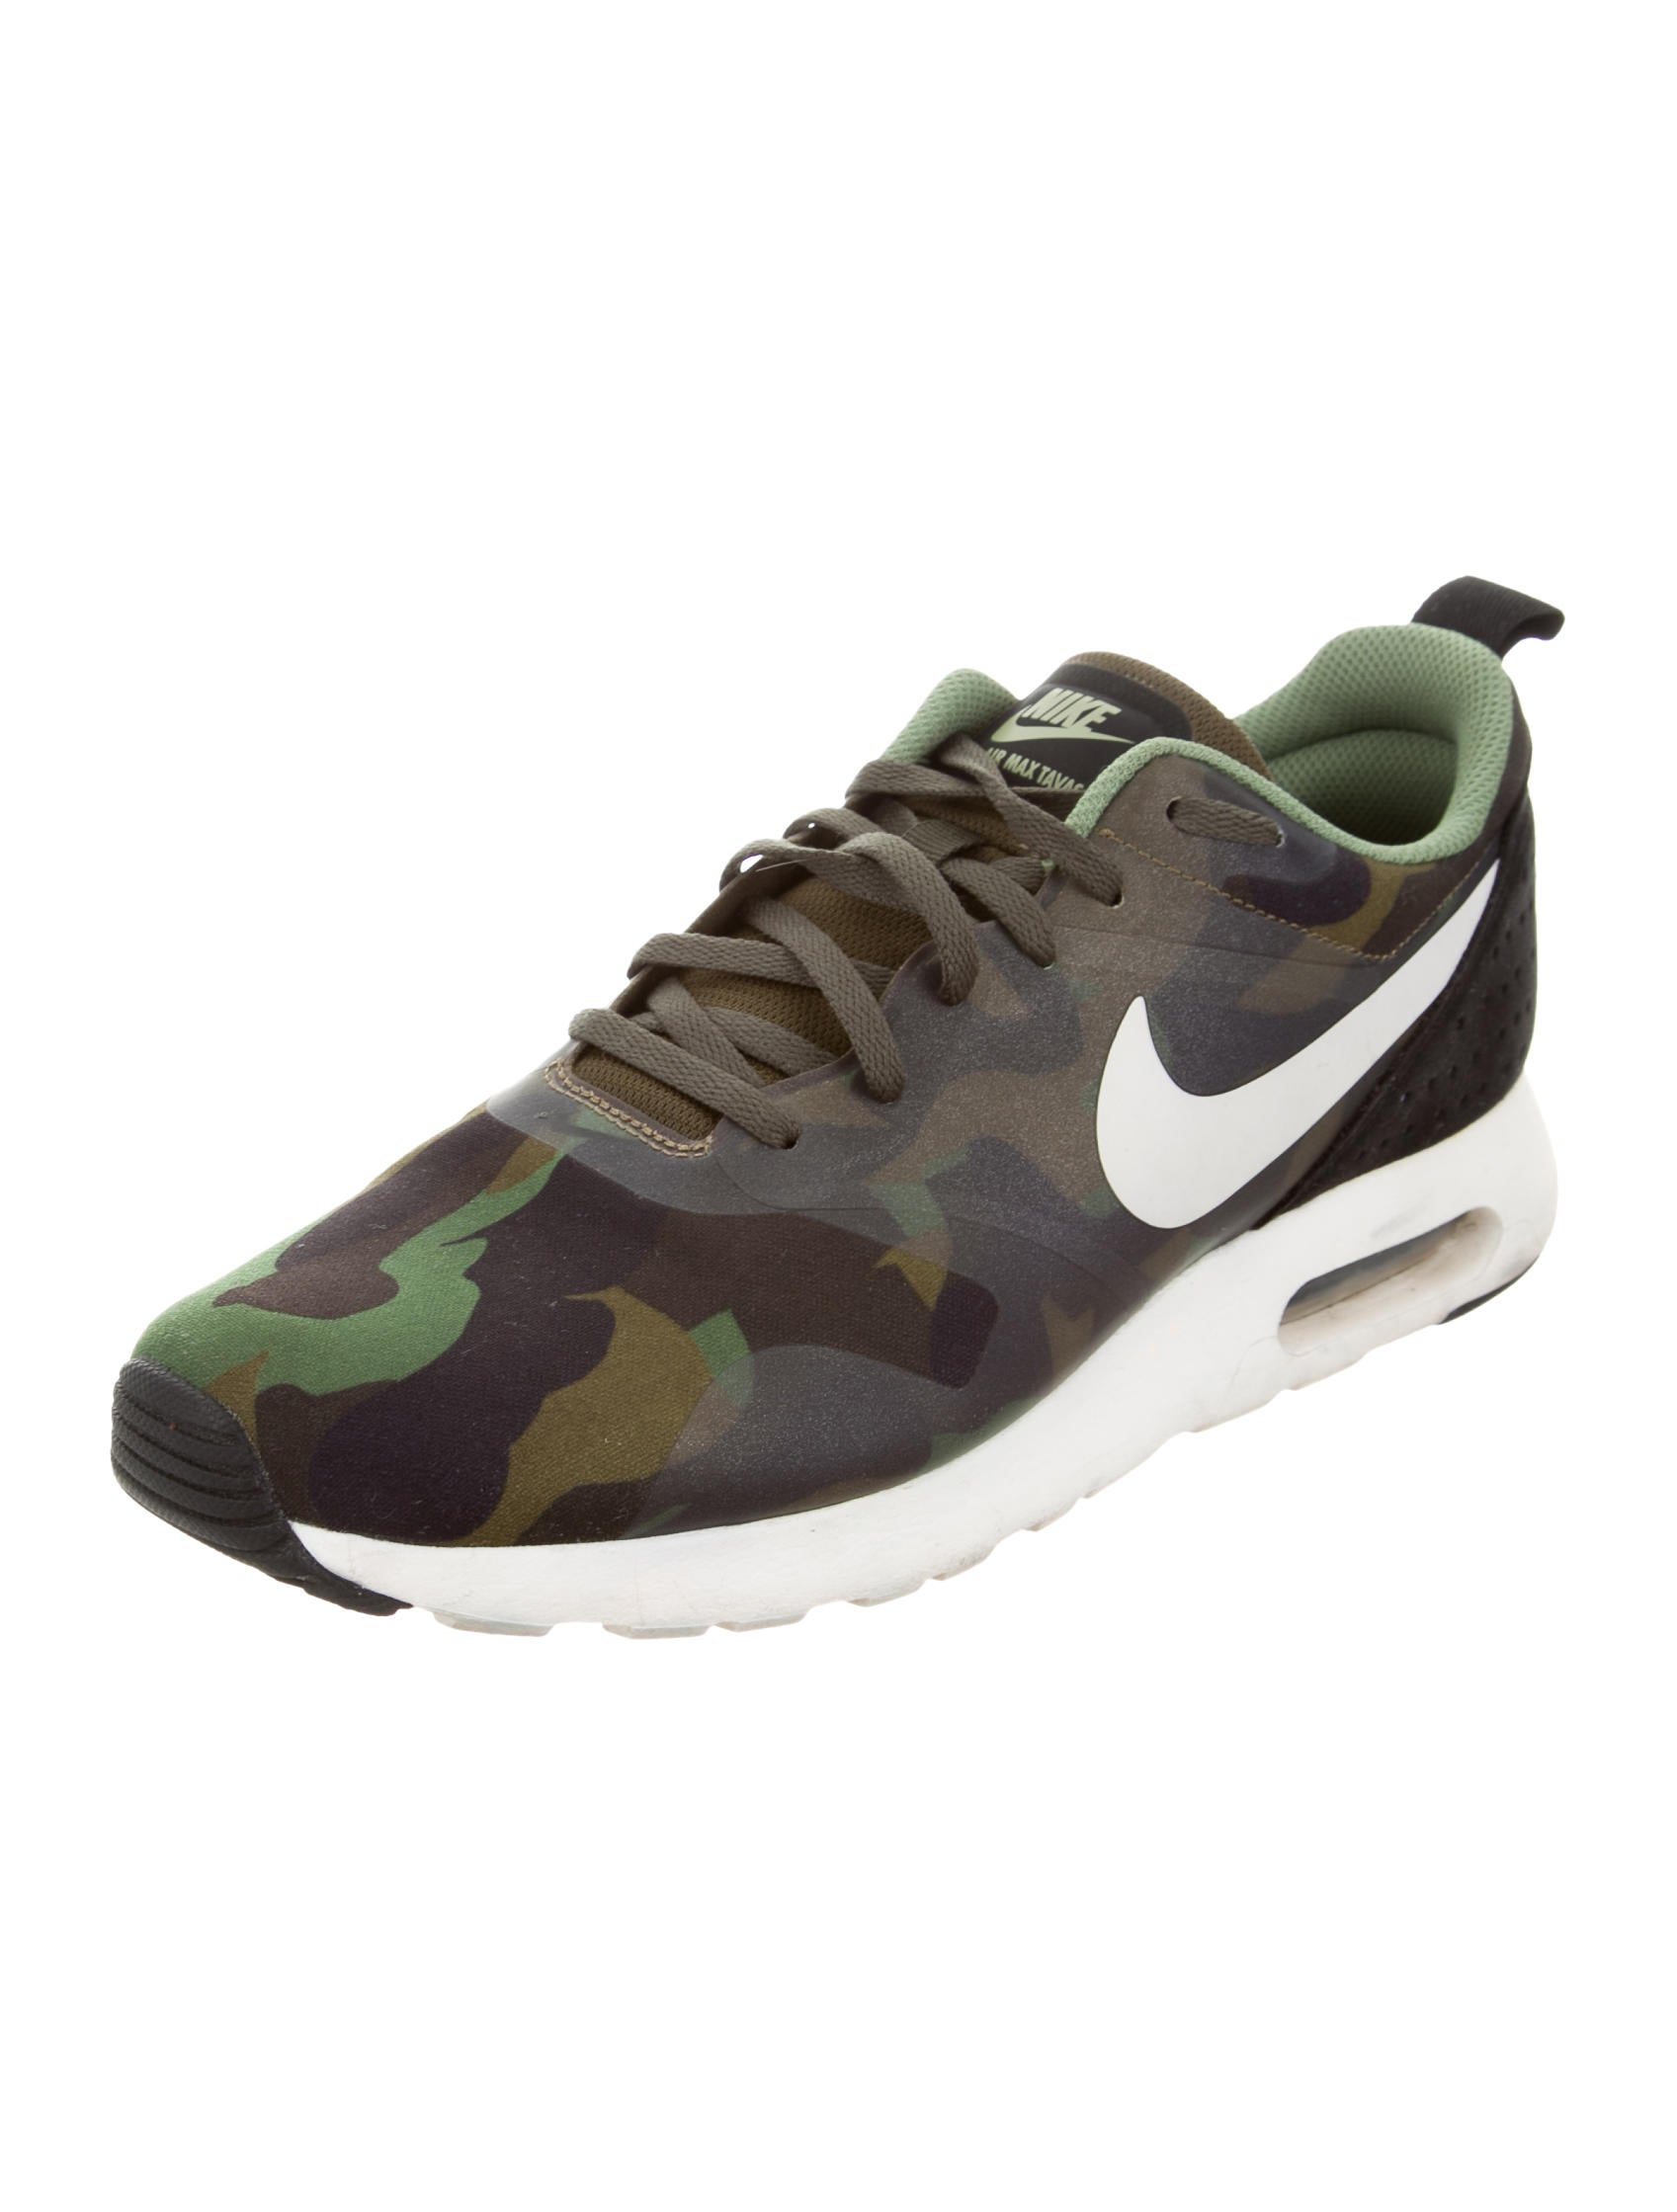 916855b5c8 Men's Air Max Tavas Camo | Traffic School Online